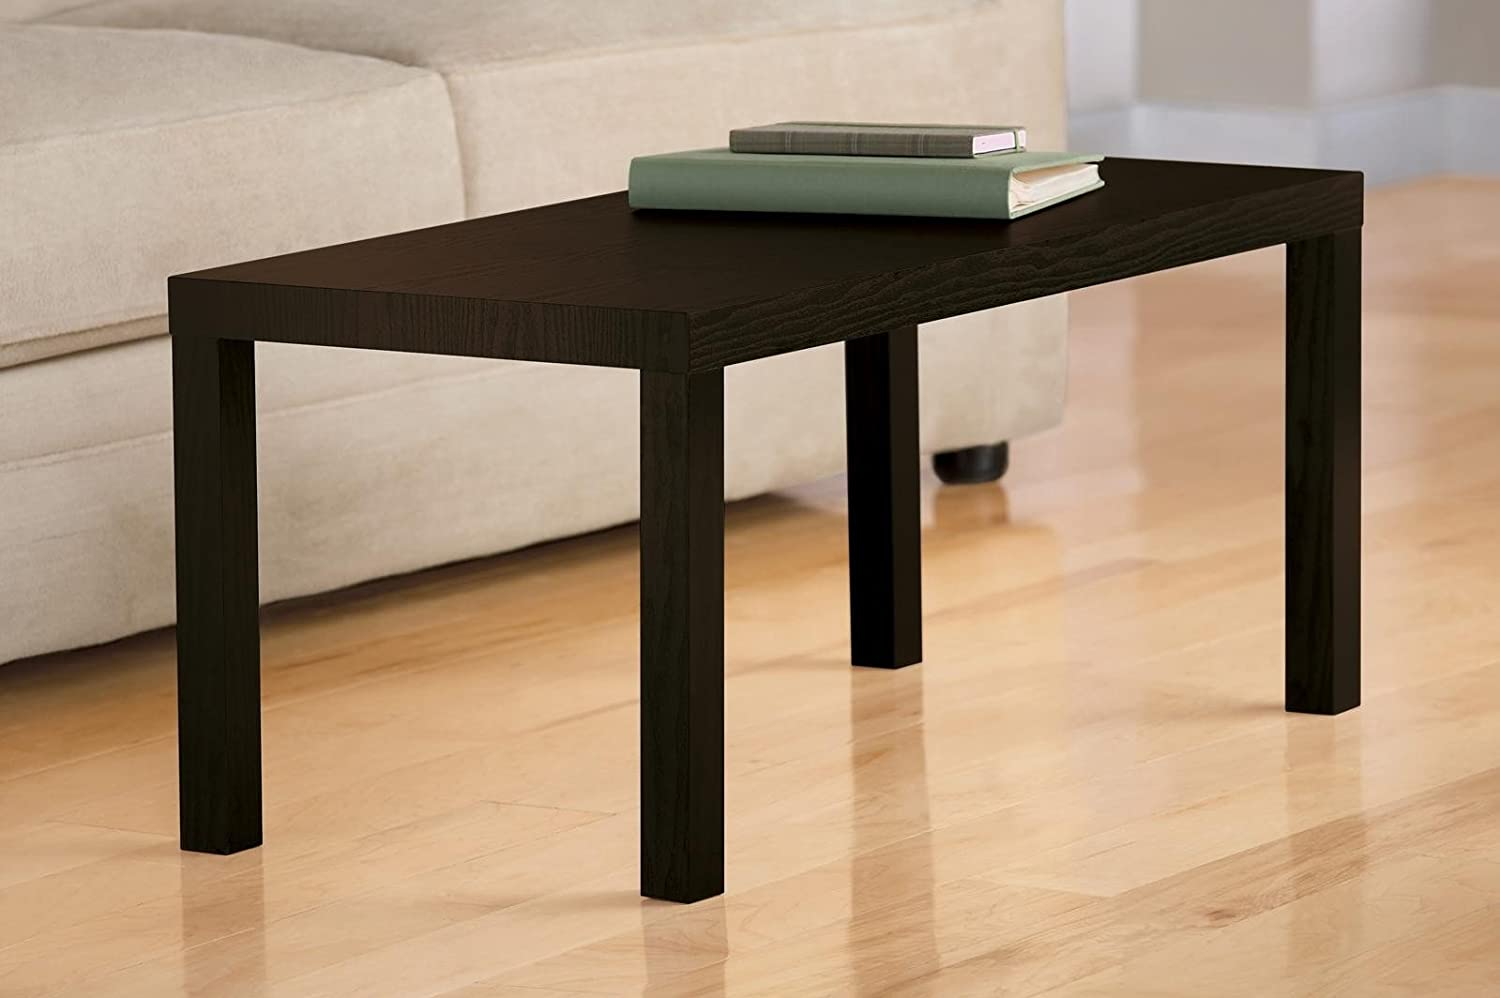 The 10 Best Selling Modern Contemporary Coffee Tables Under $100 Available  Now